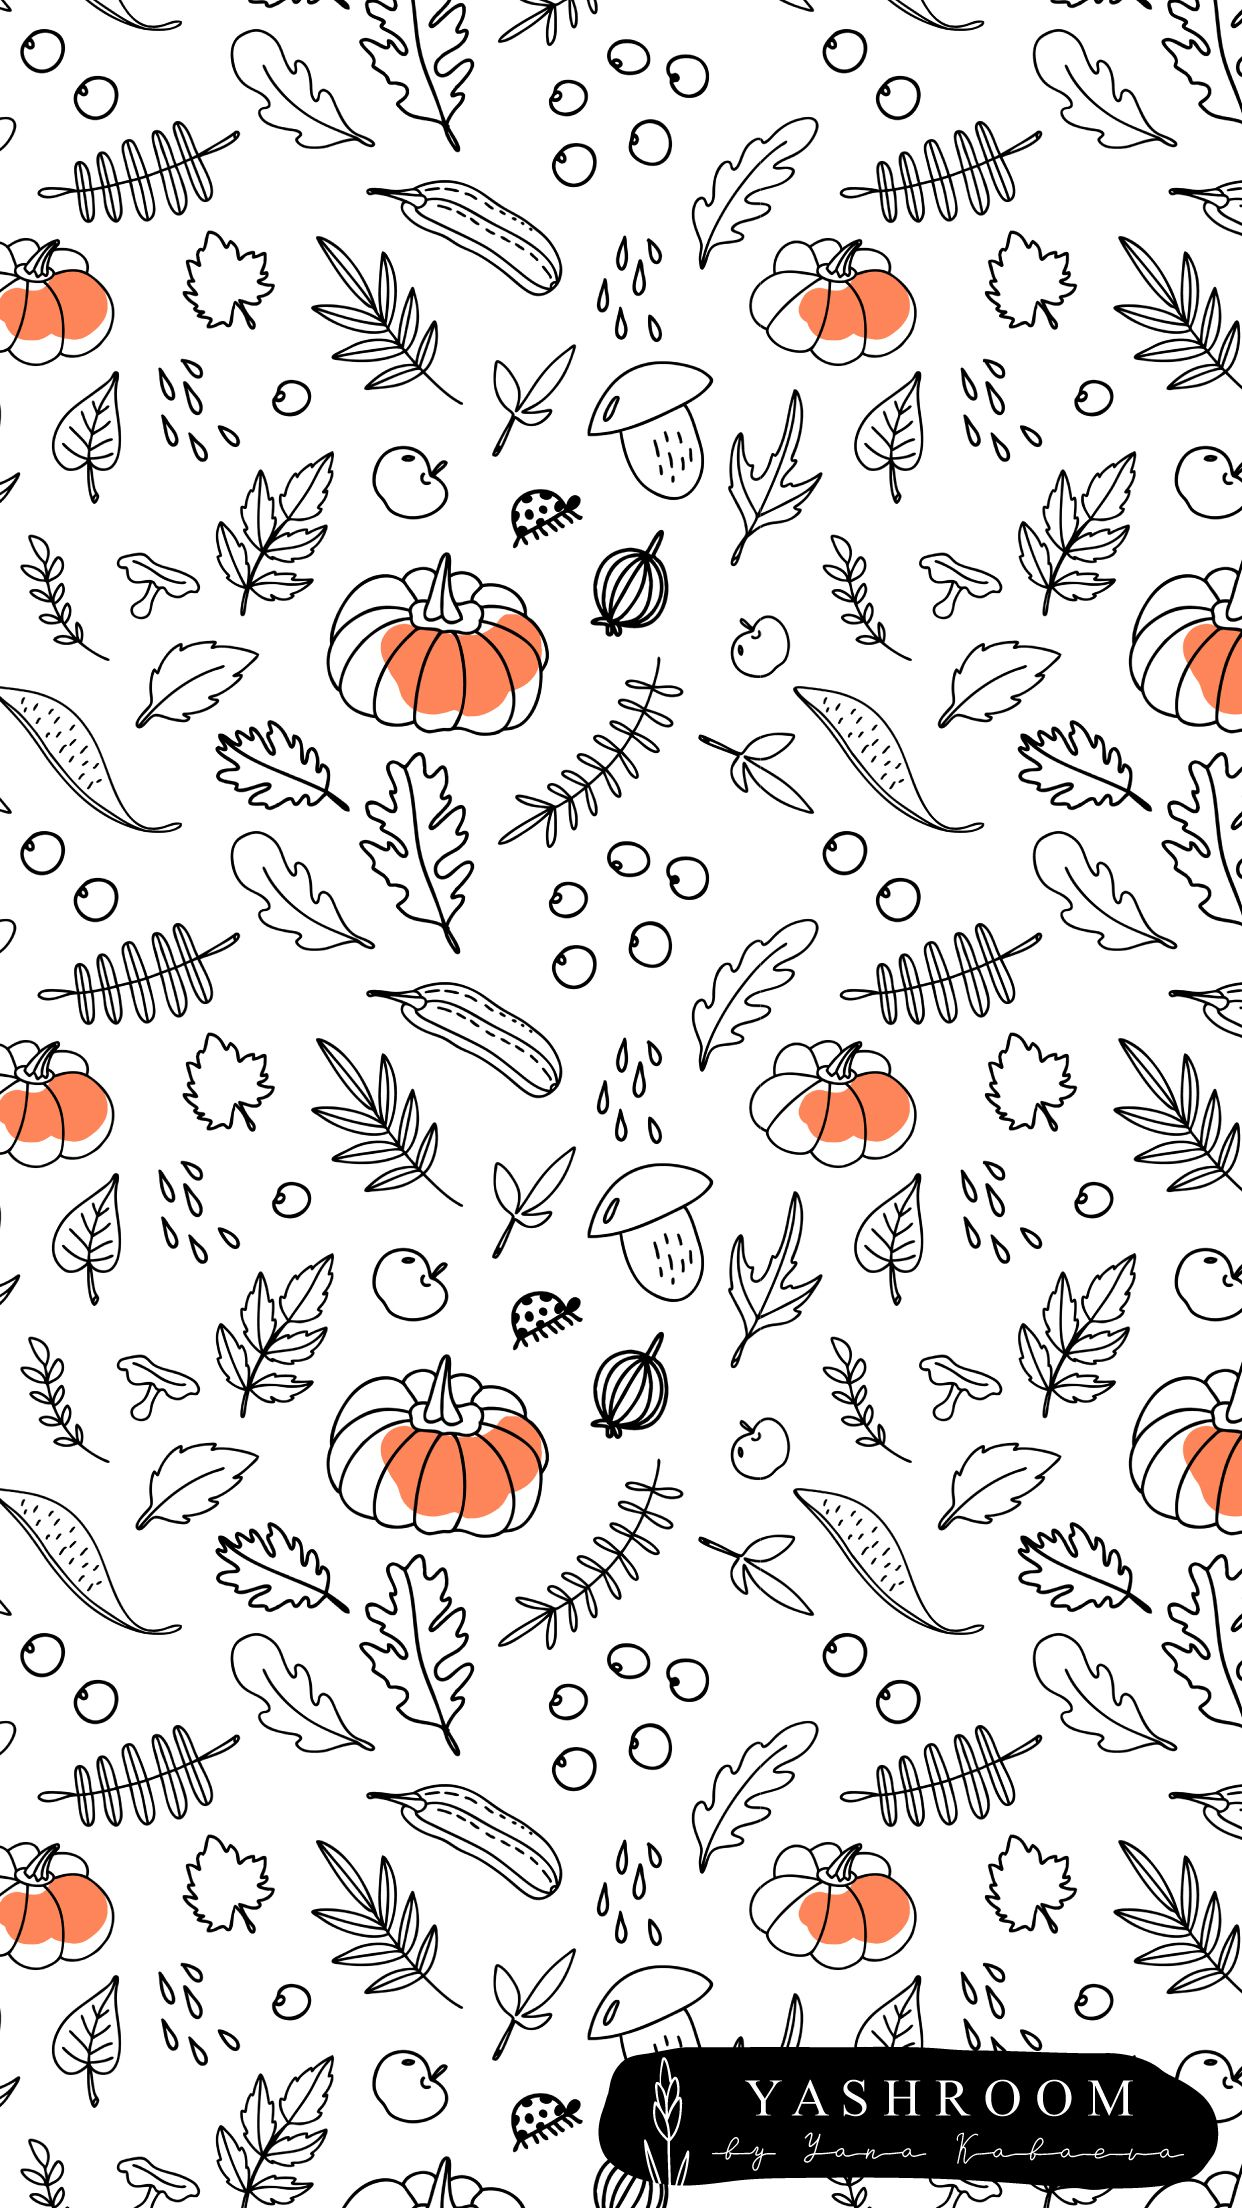 Colorful fabrics digitally printed by Spoonflower - autumn pumpkin #fallbackgrounds